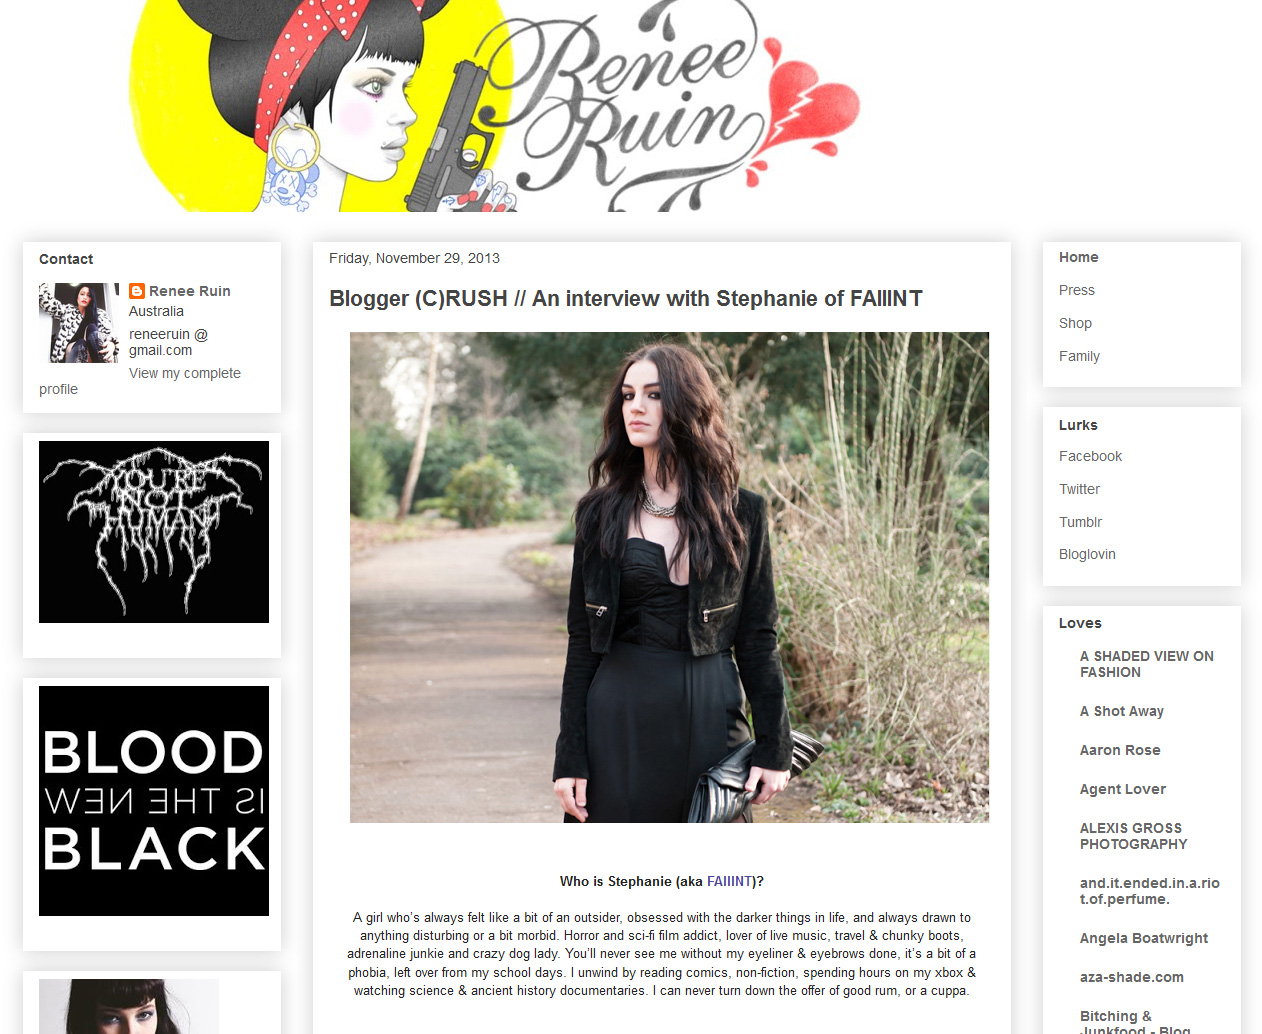 Stephanie of FAIIINT fashion blogger interview with Renee Ruin of Seriously Ruined